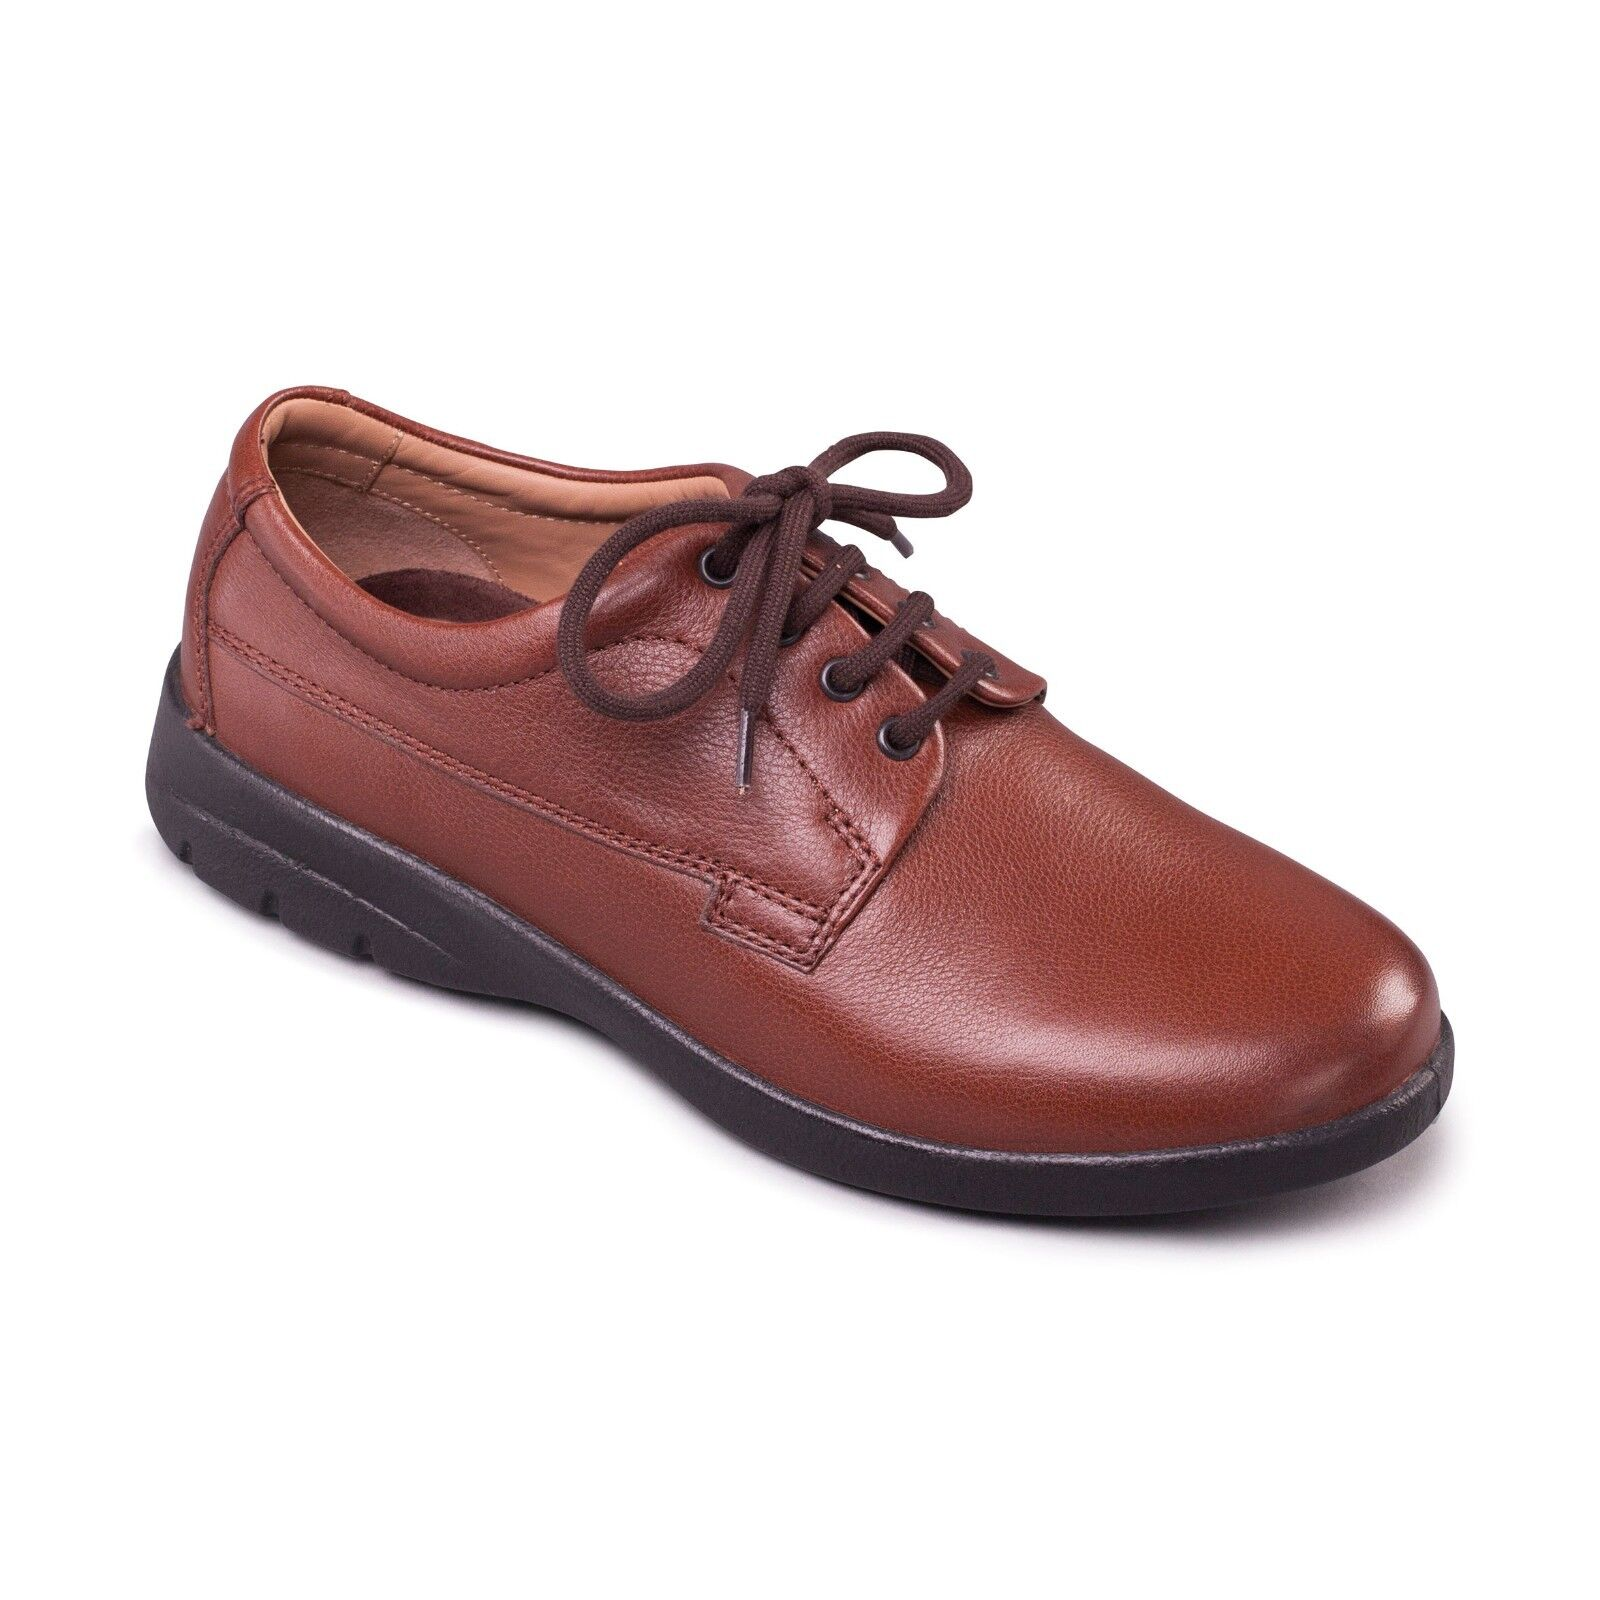 Padders Casual Hombre Lunar Leather Wide G/H Fitting Comfort Casual Padders Tie Up zapatos Tan e1a398